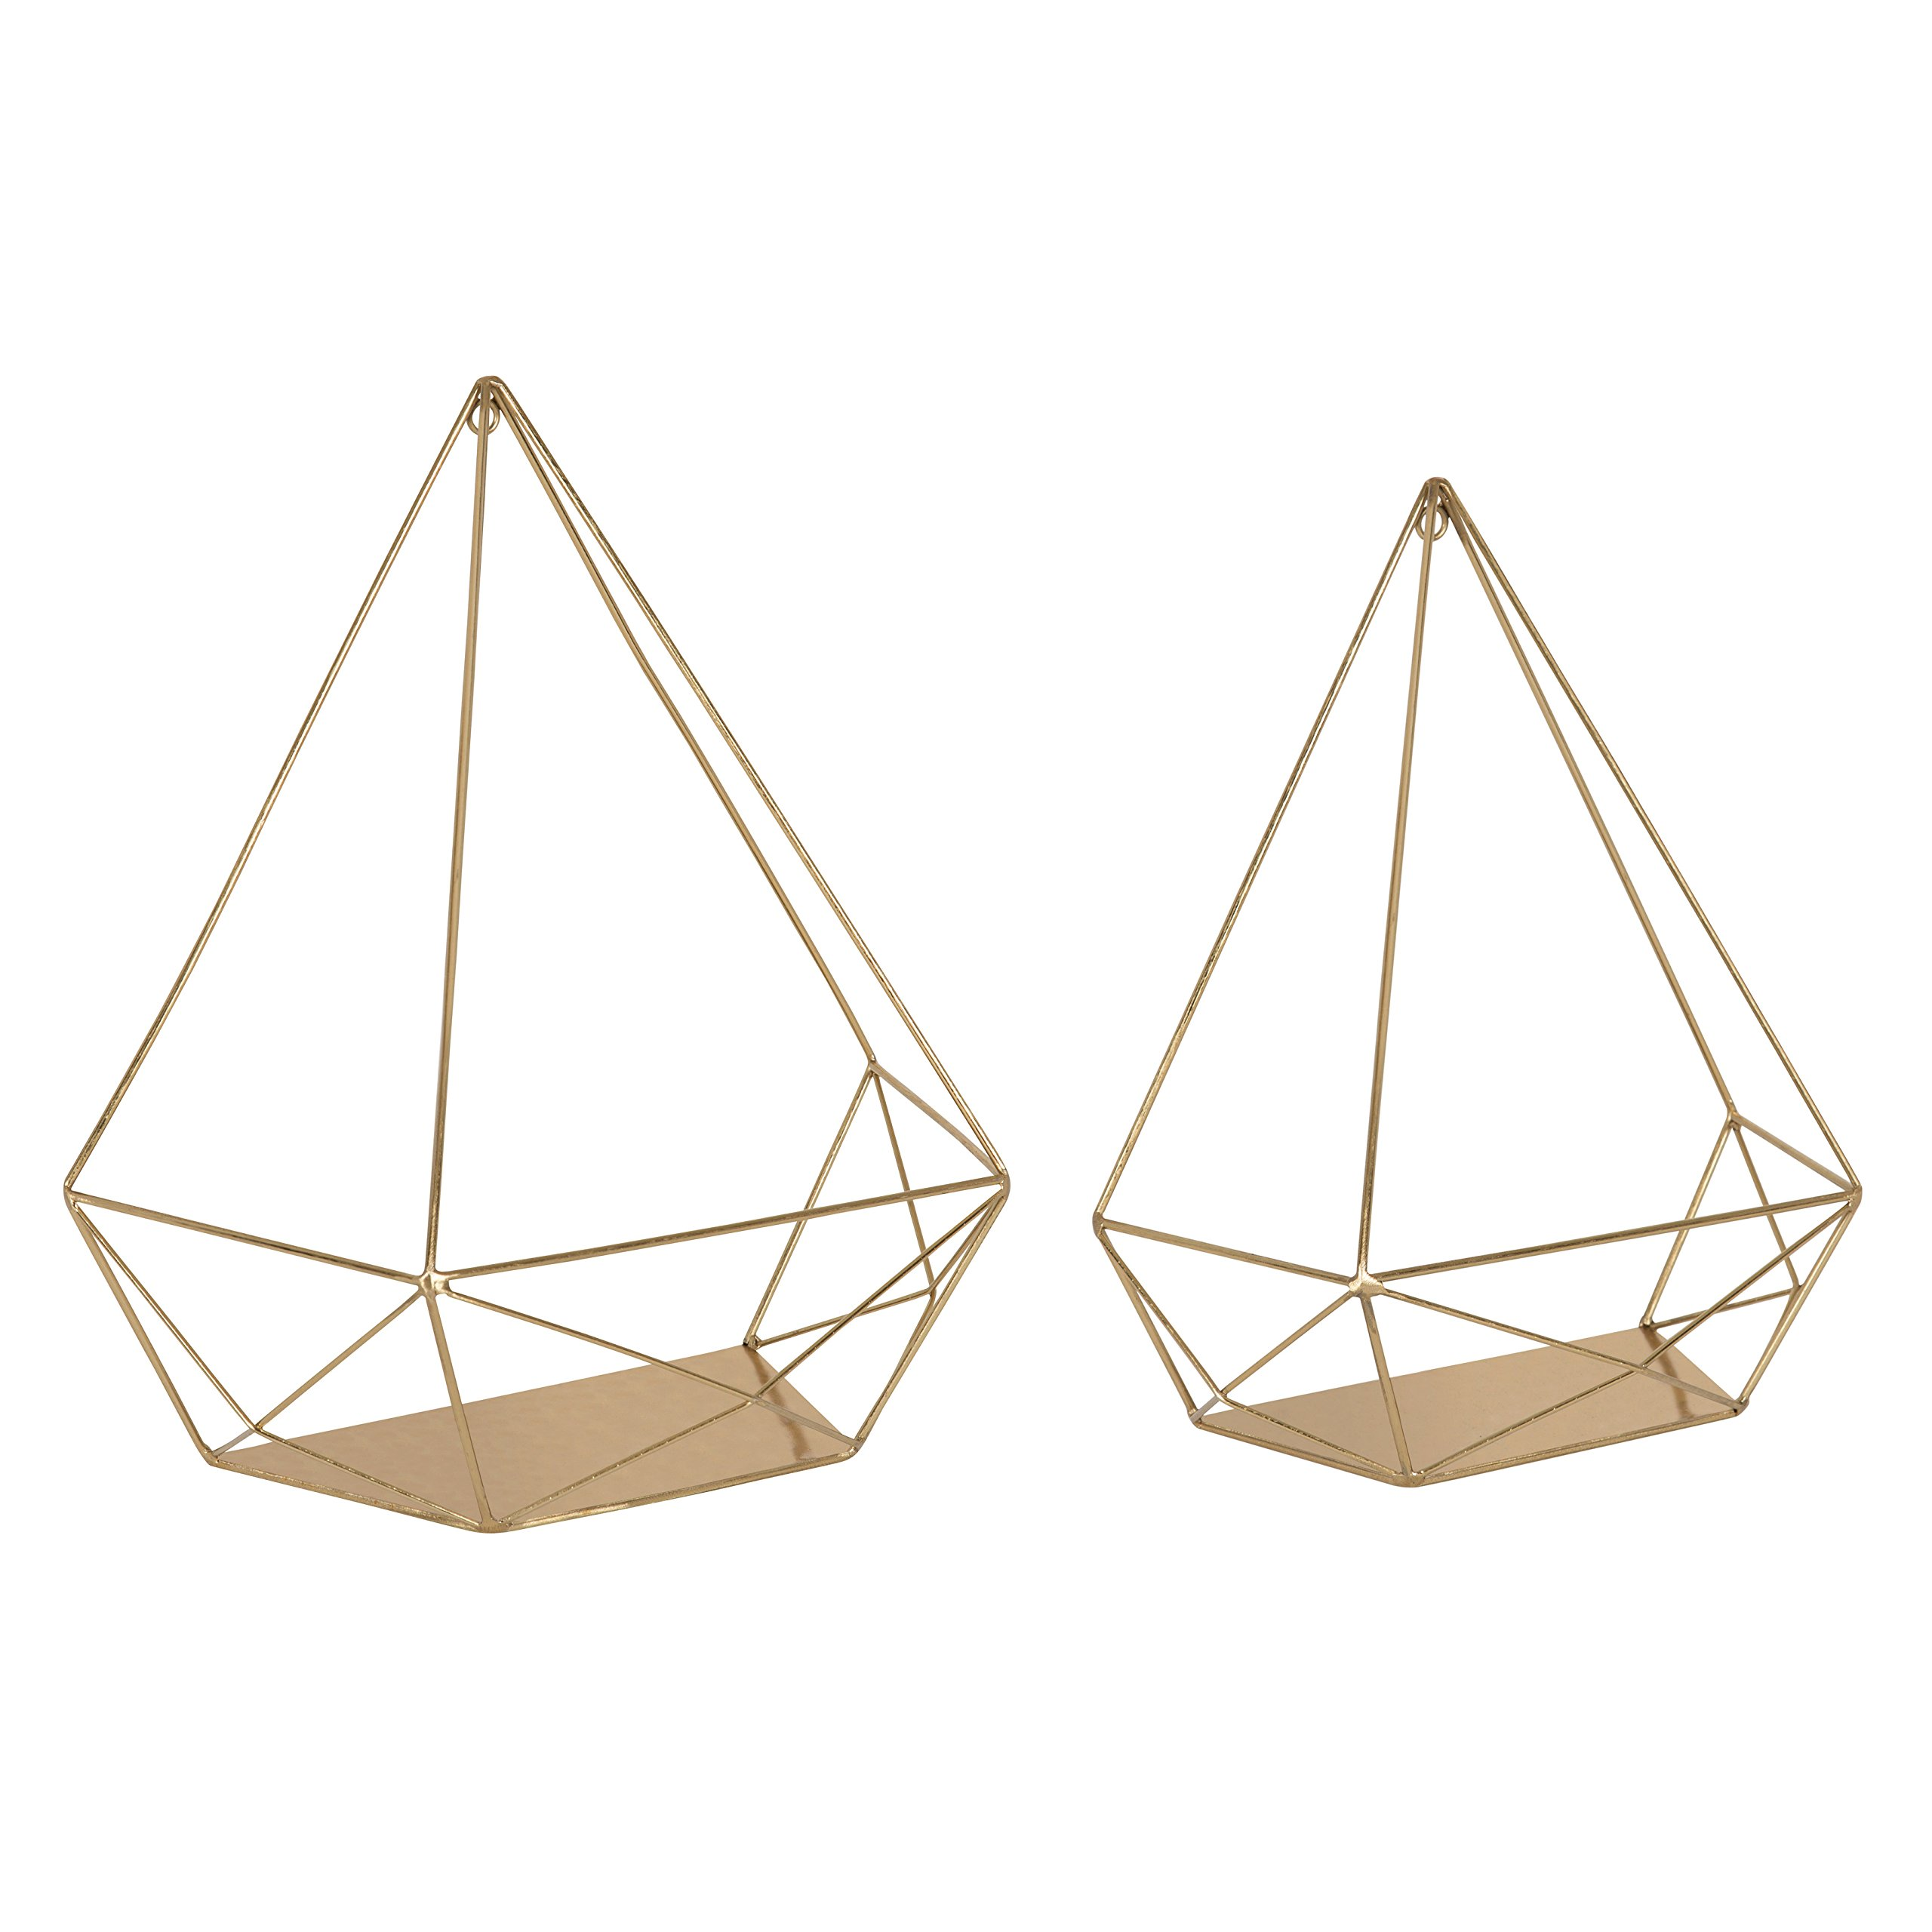 Kate and Laurel Prouve Decorative Geometric Multi-use Metal Wall Display Shelves, Gold, 2 Piece Set by Kate and Laurel